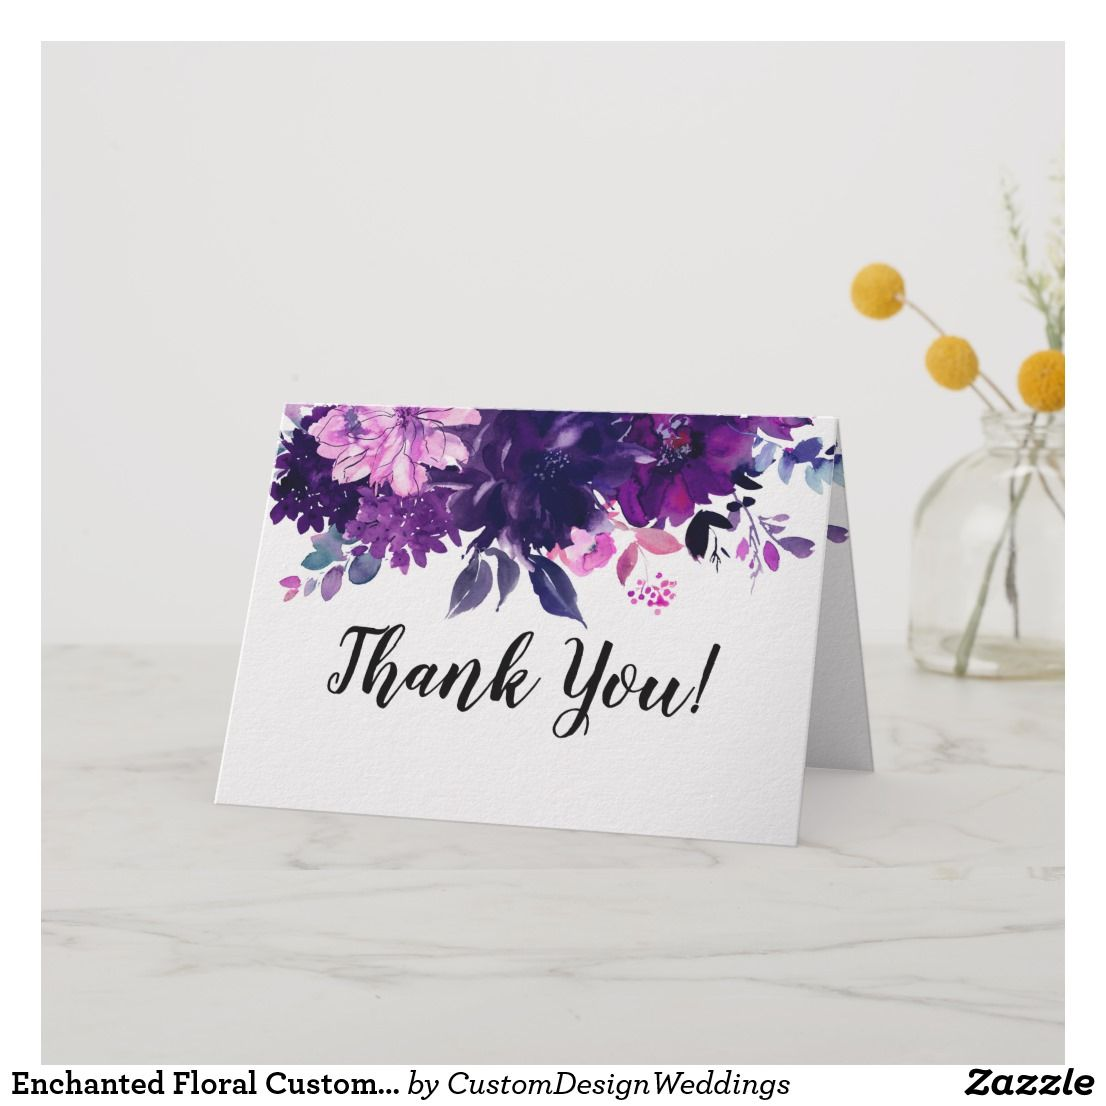 Enchanted Floral Custom Wedding Photo Thank You Card Thank You